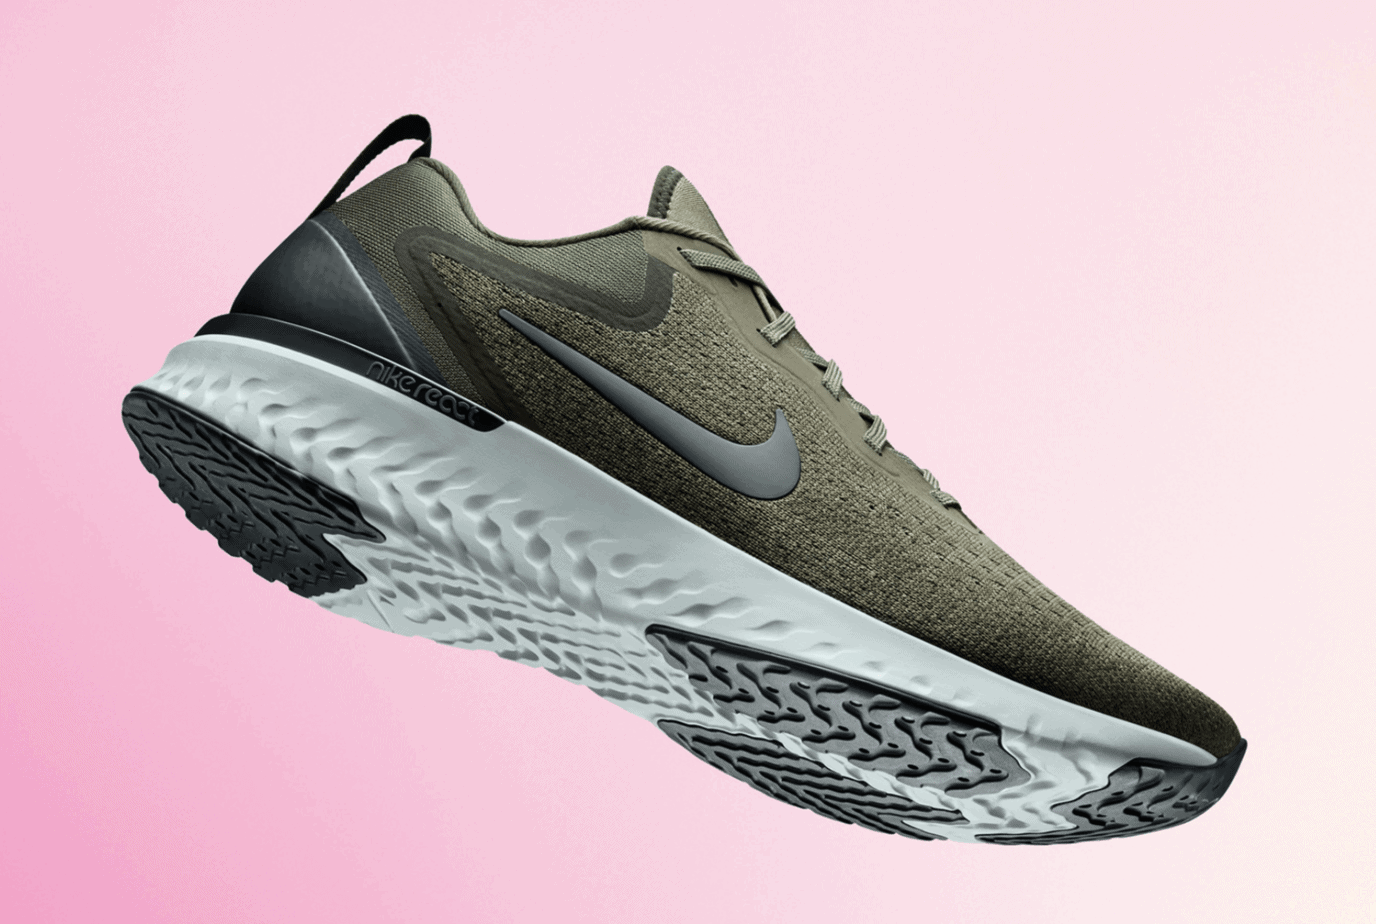 buy online d094e b5a81 The foam first debuted on the Epic React Flyknit, a lightweight running  shoe. Now, the Swoosh is introducing a new model to the line, the Nike  Odyssey ...